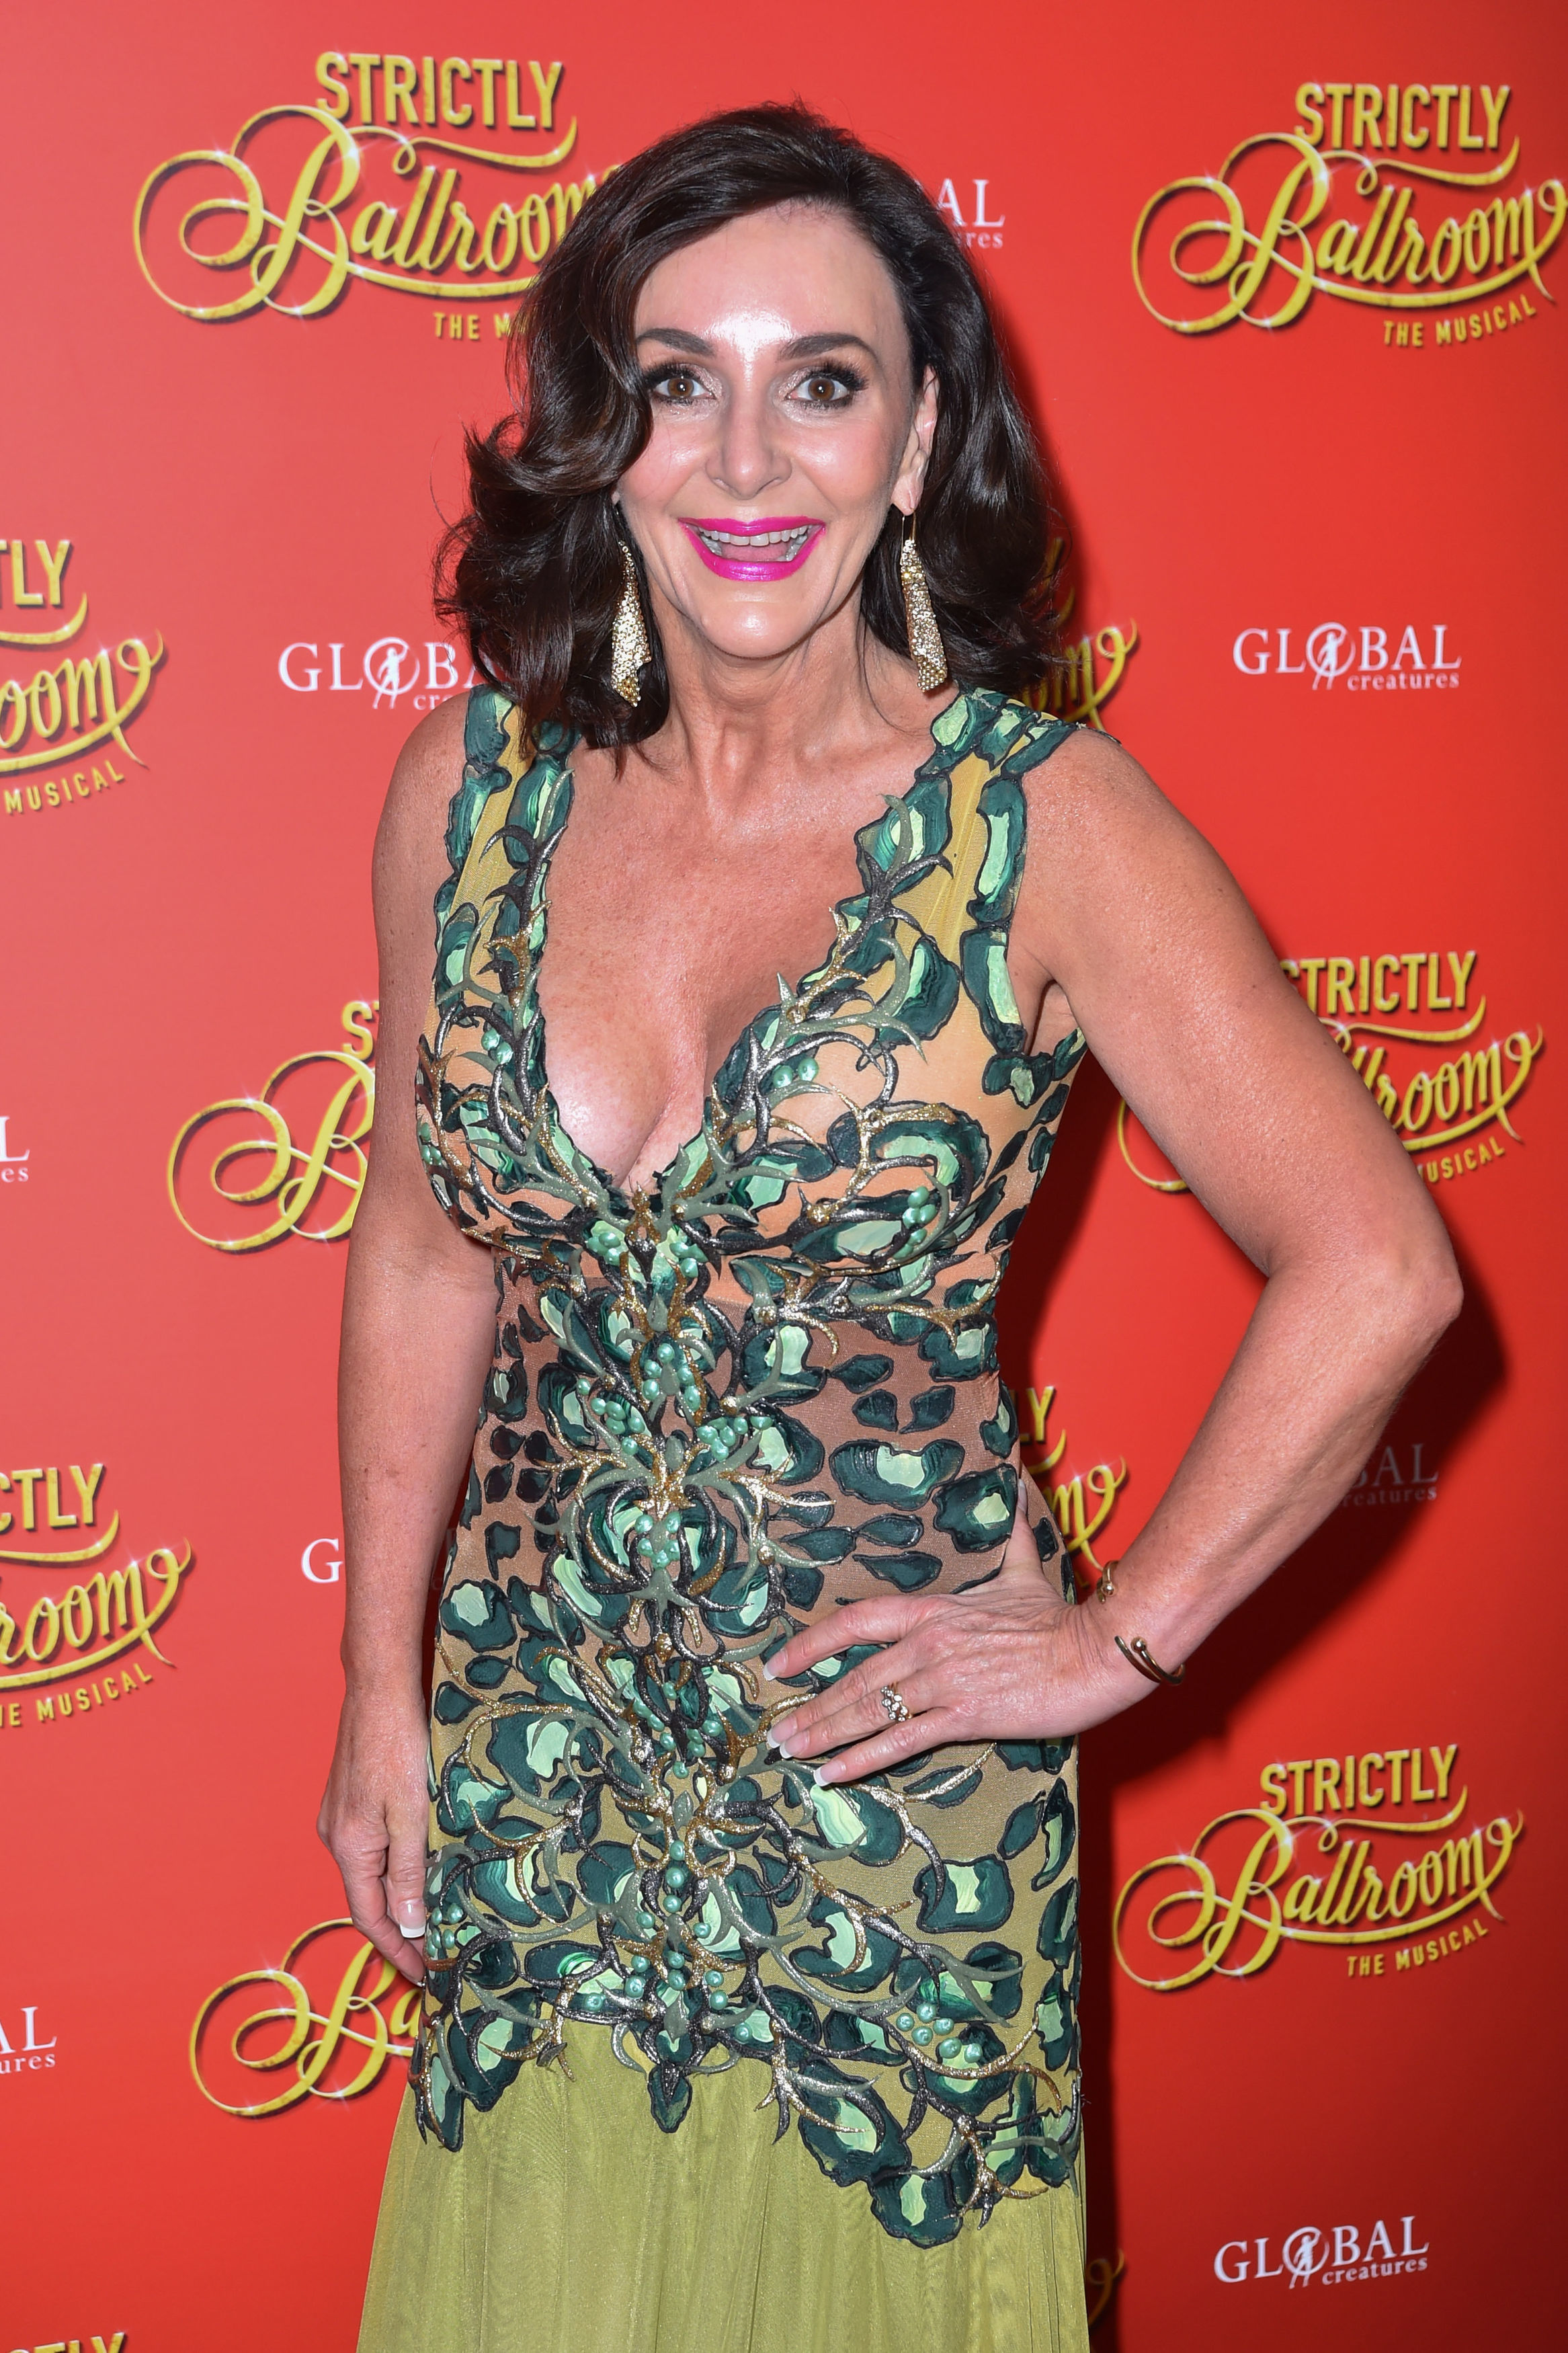 File photo dated 24/04/18 of Strictly Come Dancing's head judge Shirley Ballas, who has insisted she will only judge Seann Walsh and Katya Jones on their dancing when they return to the show this weekend. PRESS ASSOCIATION Photo. Issue date: Wednesday